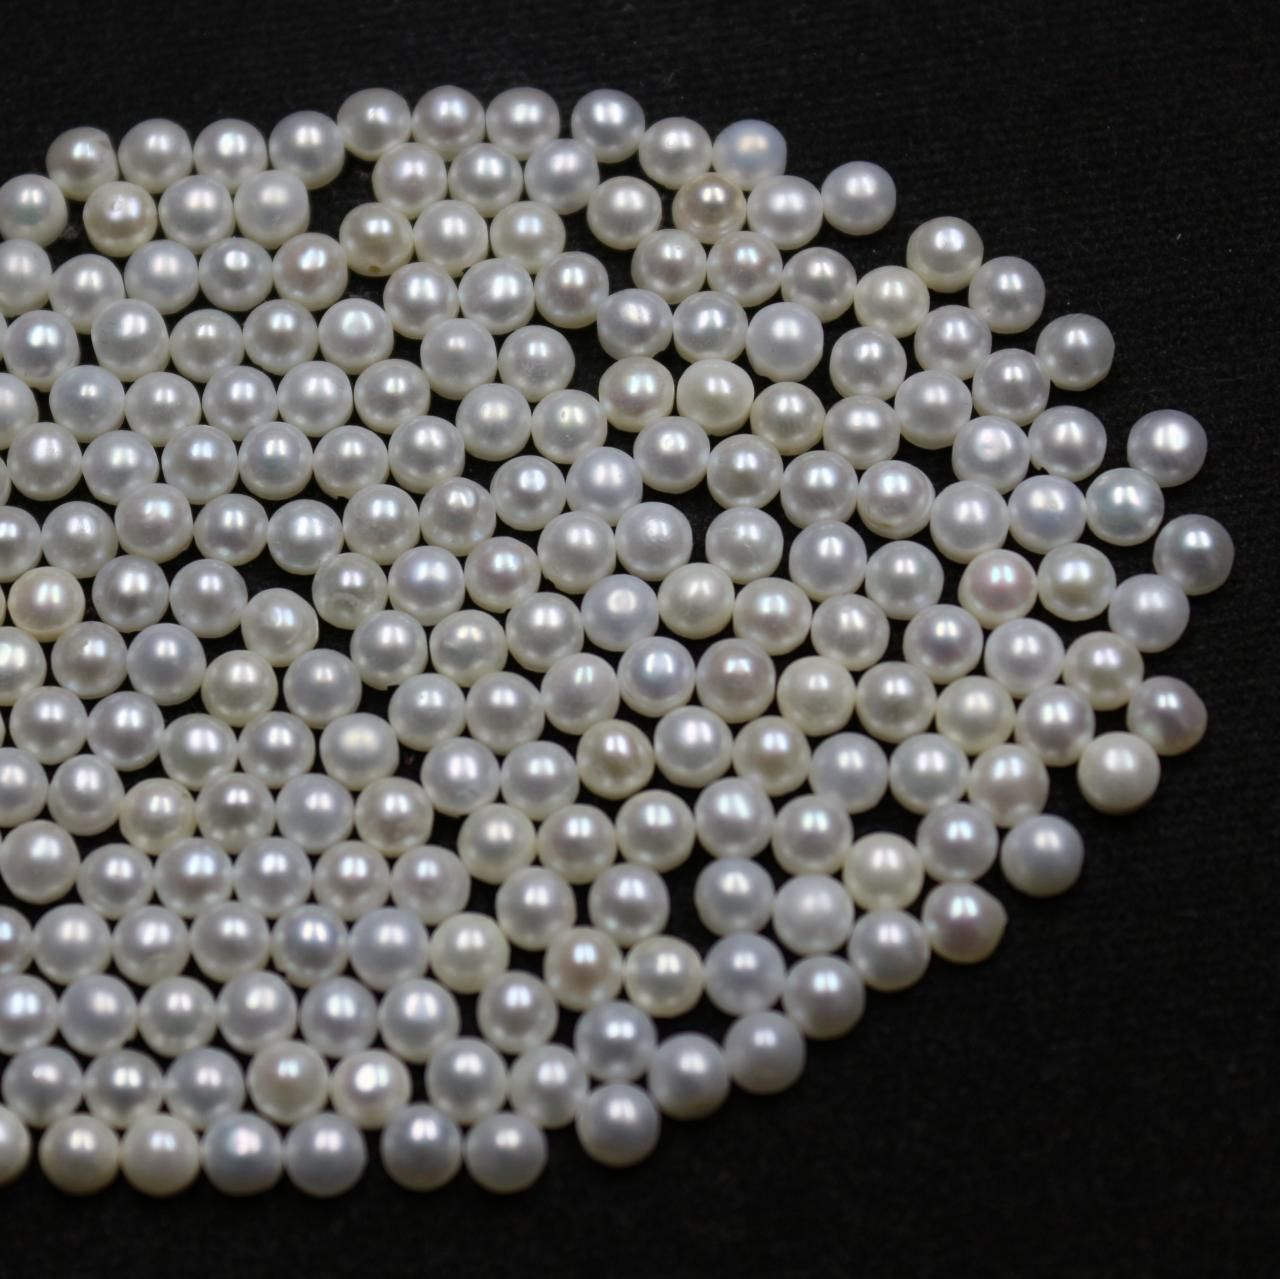 6mm Natural Fresh Water White Pearl - Half Cut Flat Back Cabochon Round 100 Pieces Top Quality White Pearl - Loose Gemstone Wholesale Lot For Sale